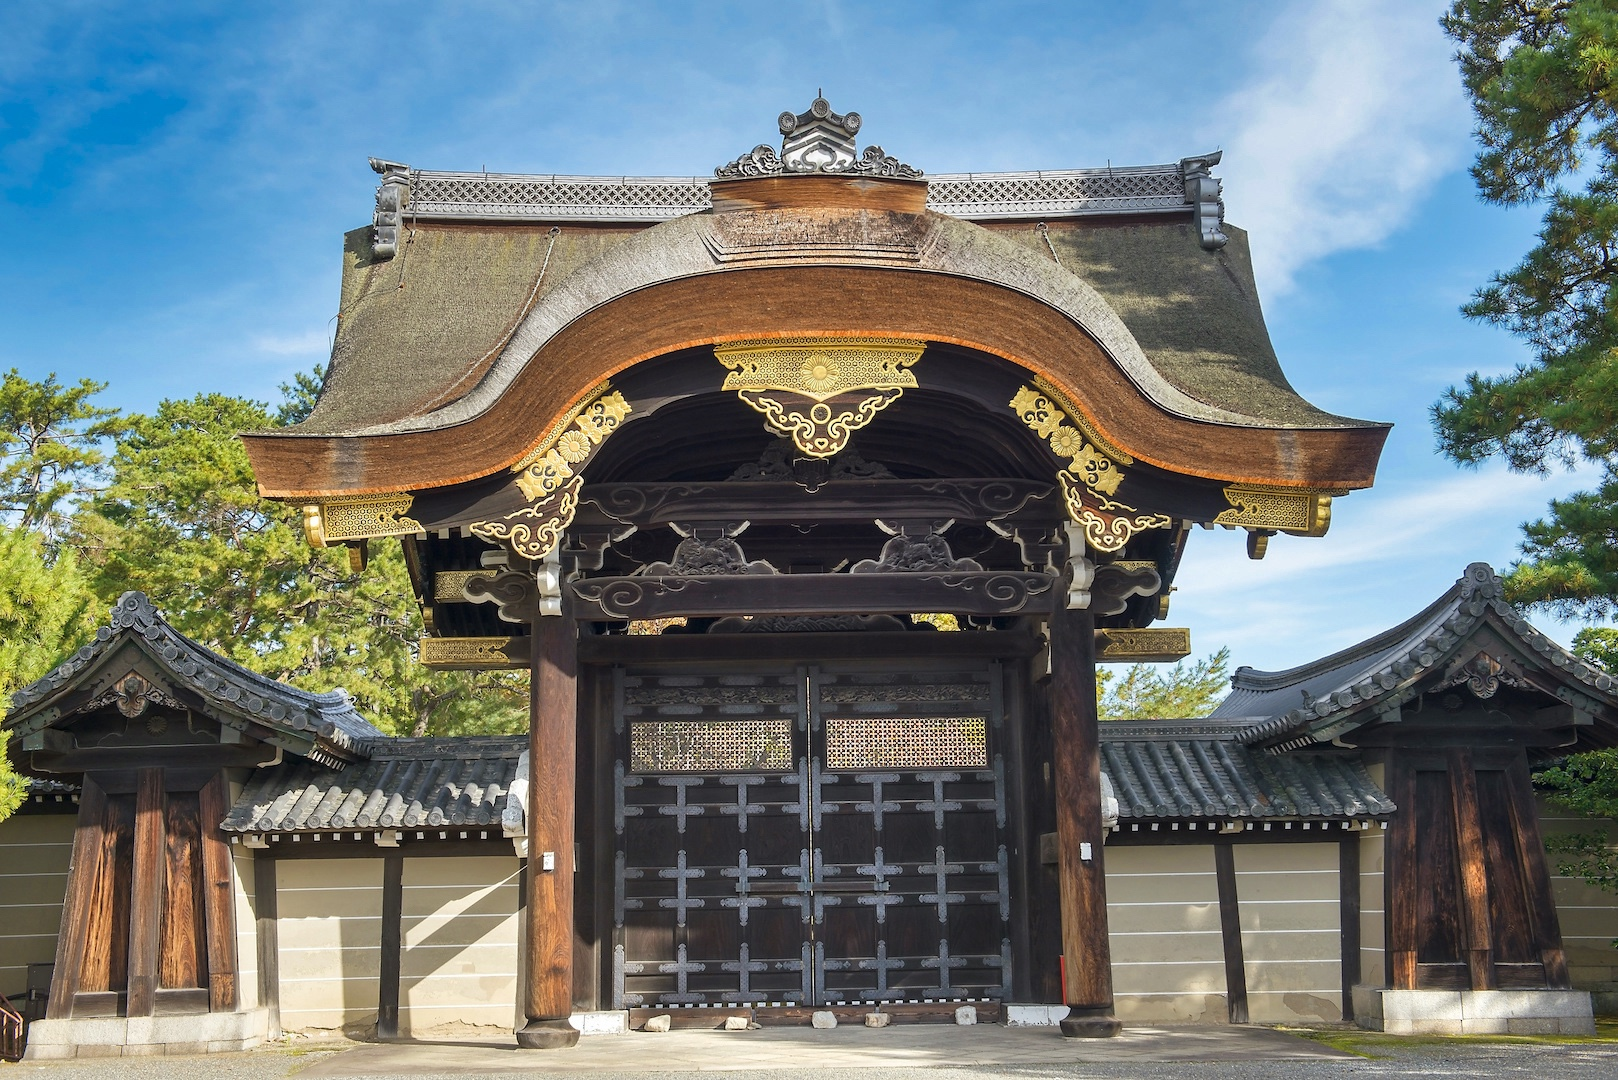 One of the gates of the Kyoto Imperial Palace.